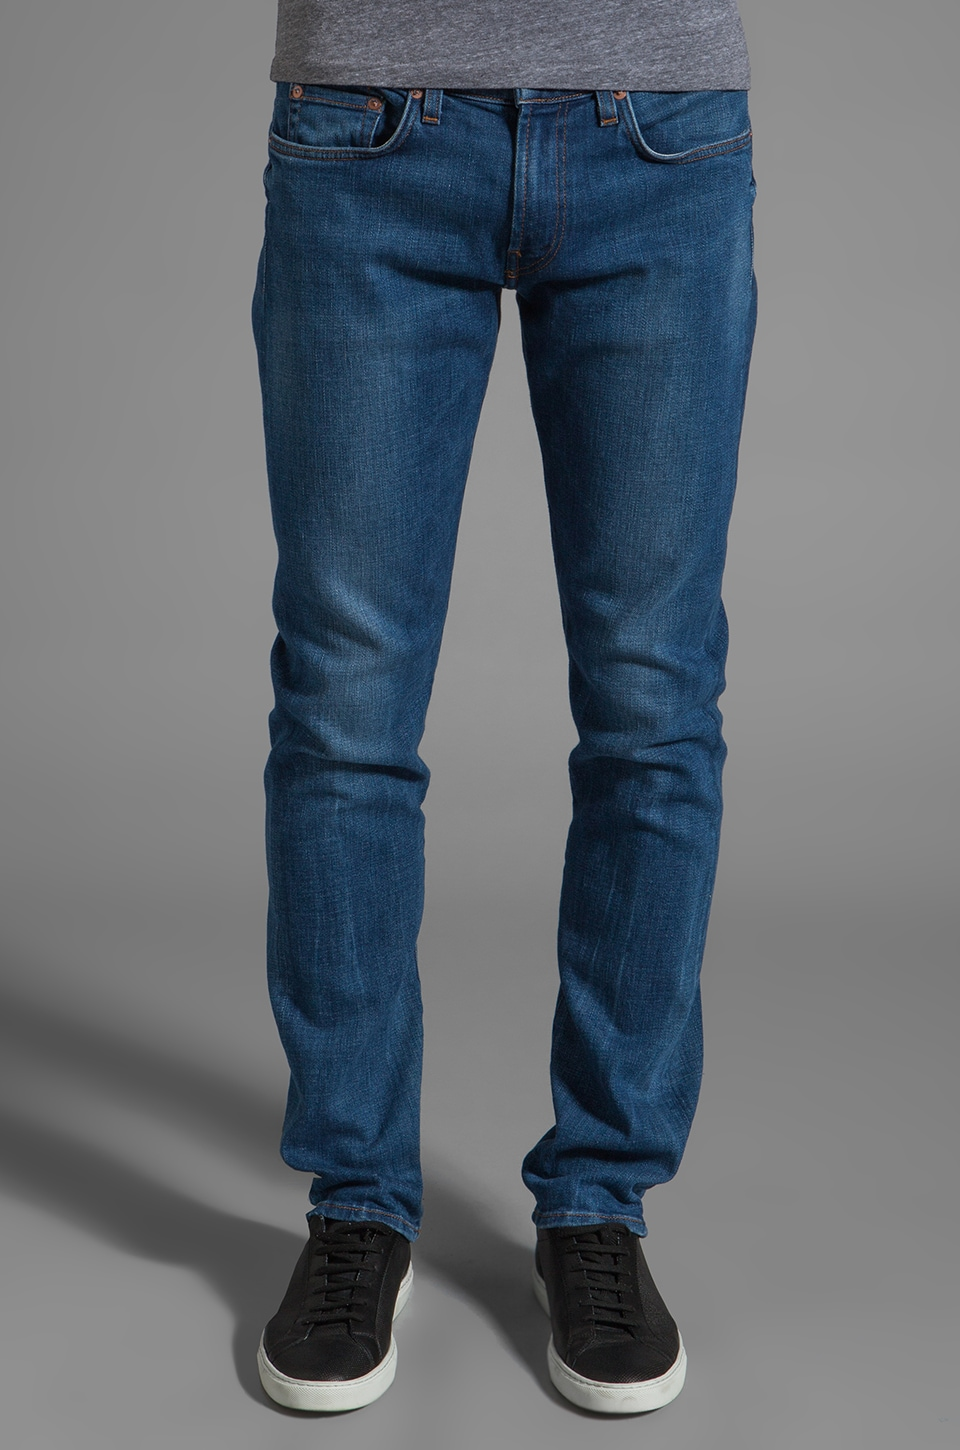 J Brand Tyler Perfect Slim Jeans in Blue Beatnik